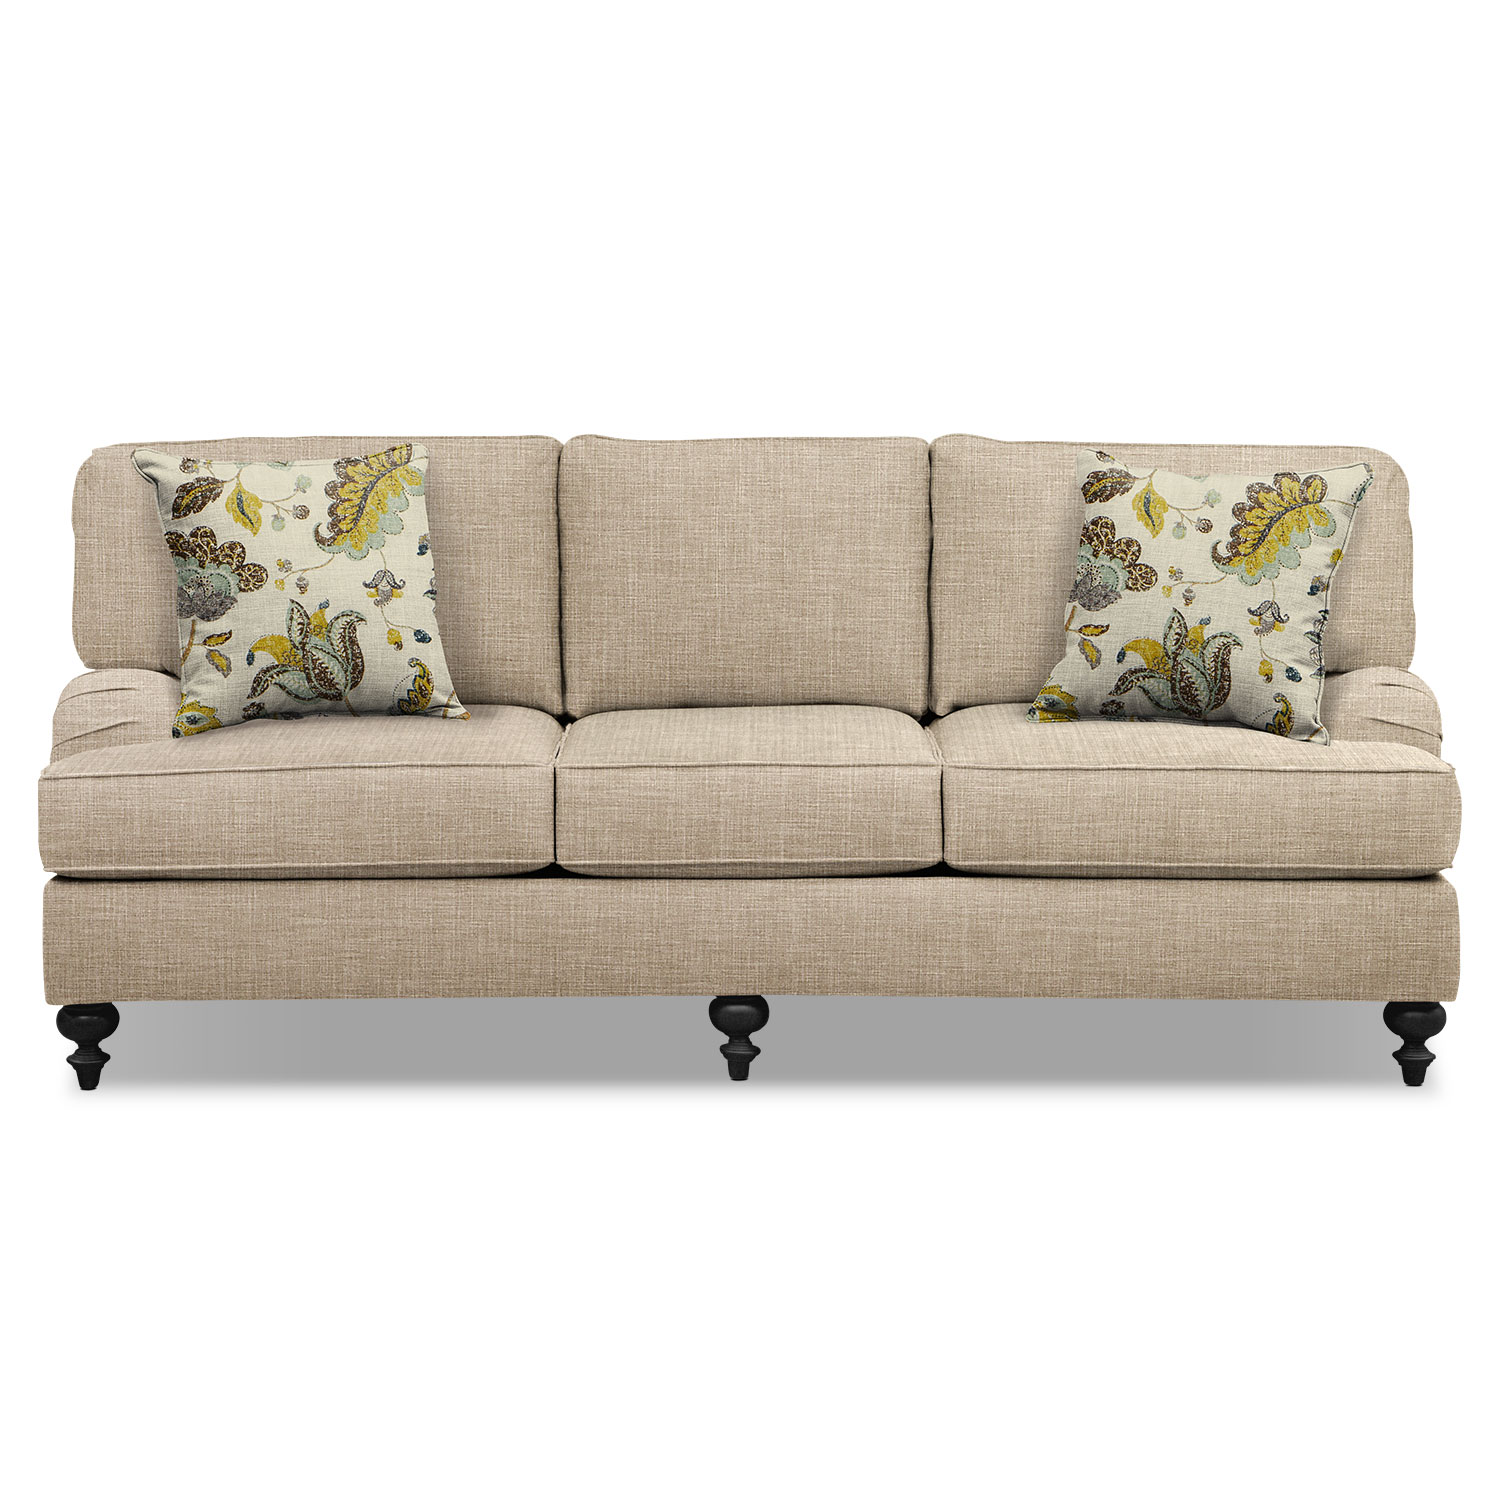 "Avery Taupe 86"" Innerspring Sleeper Sofa"